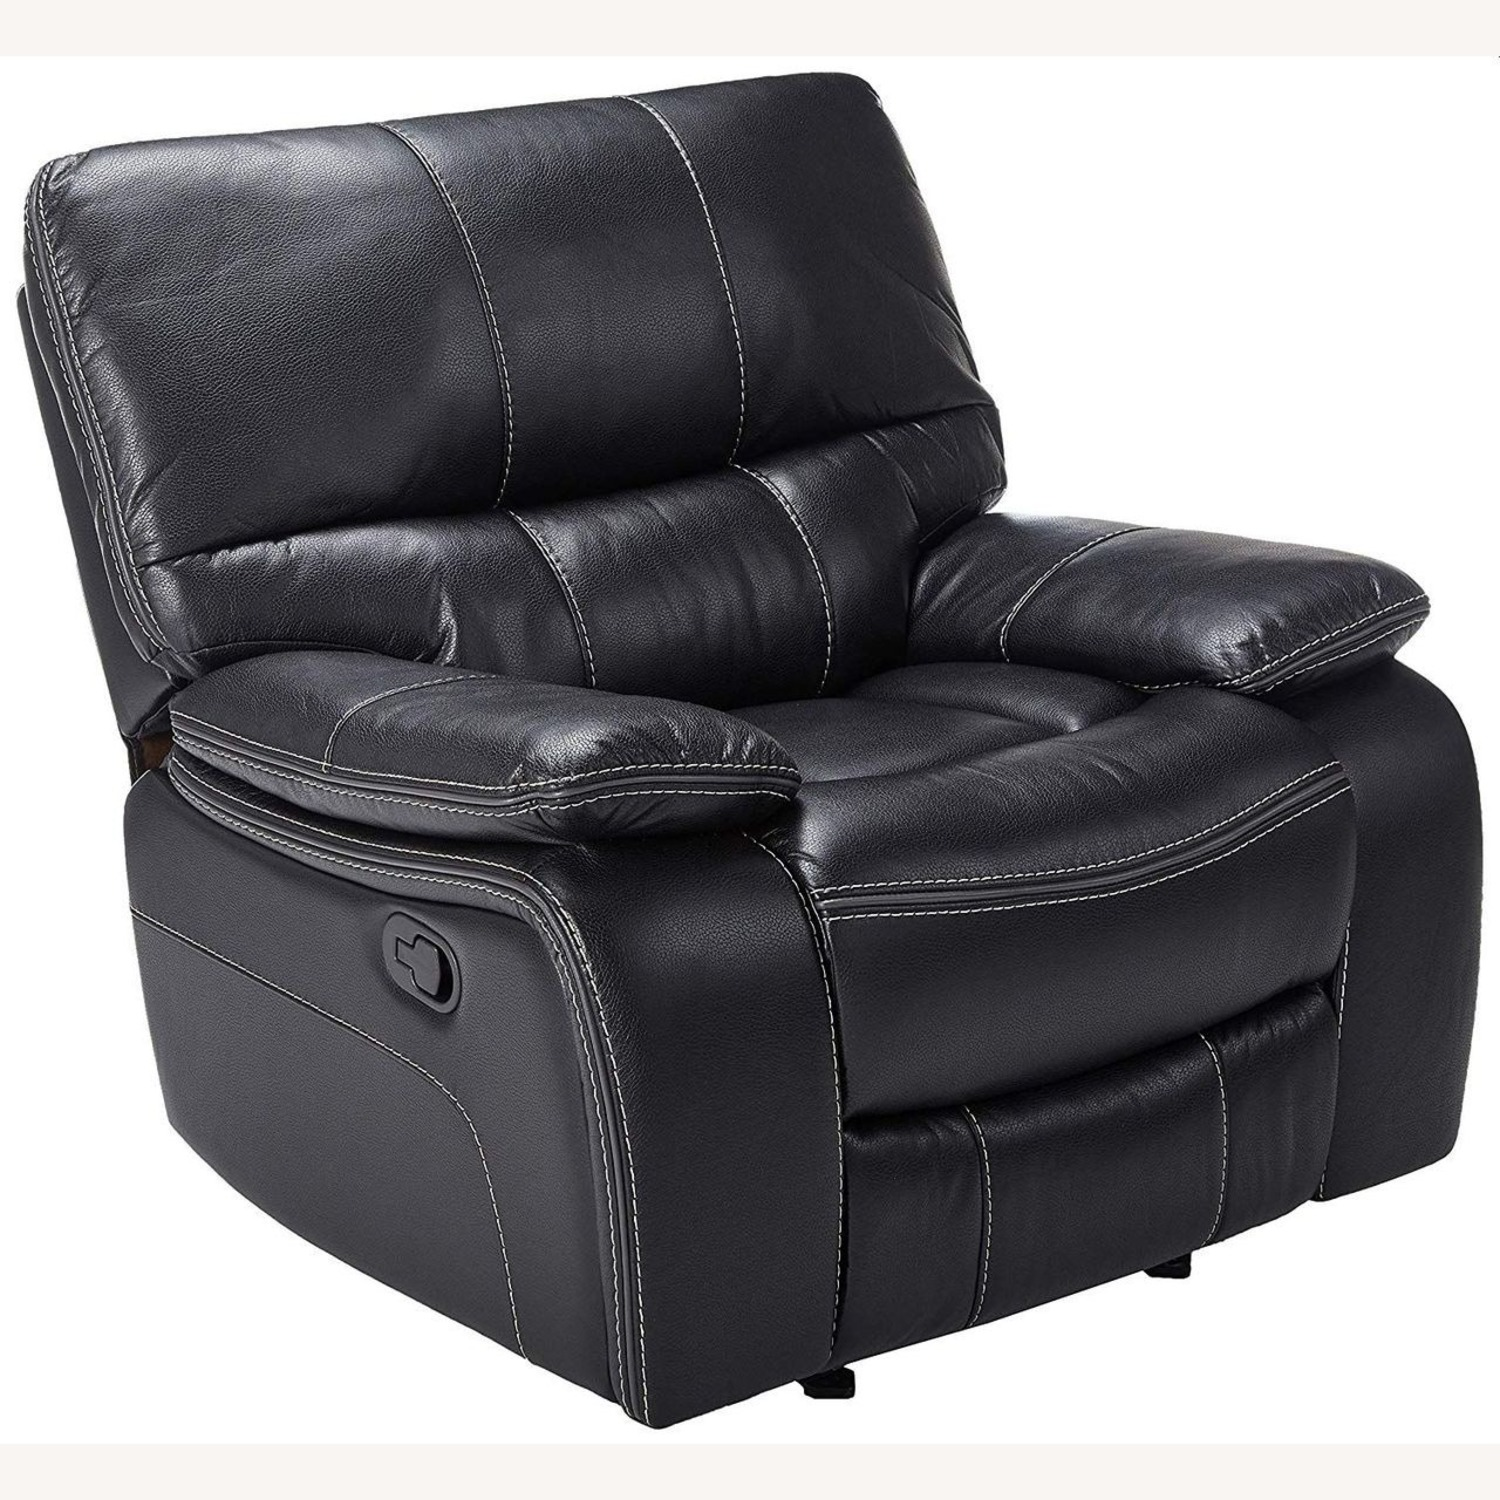 Glider Recliner W/ Scooped Seating In Black Finish - image-0